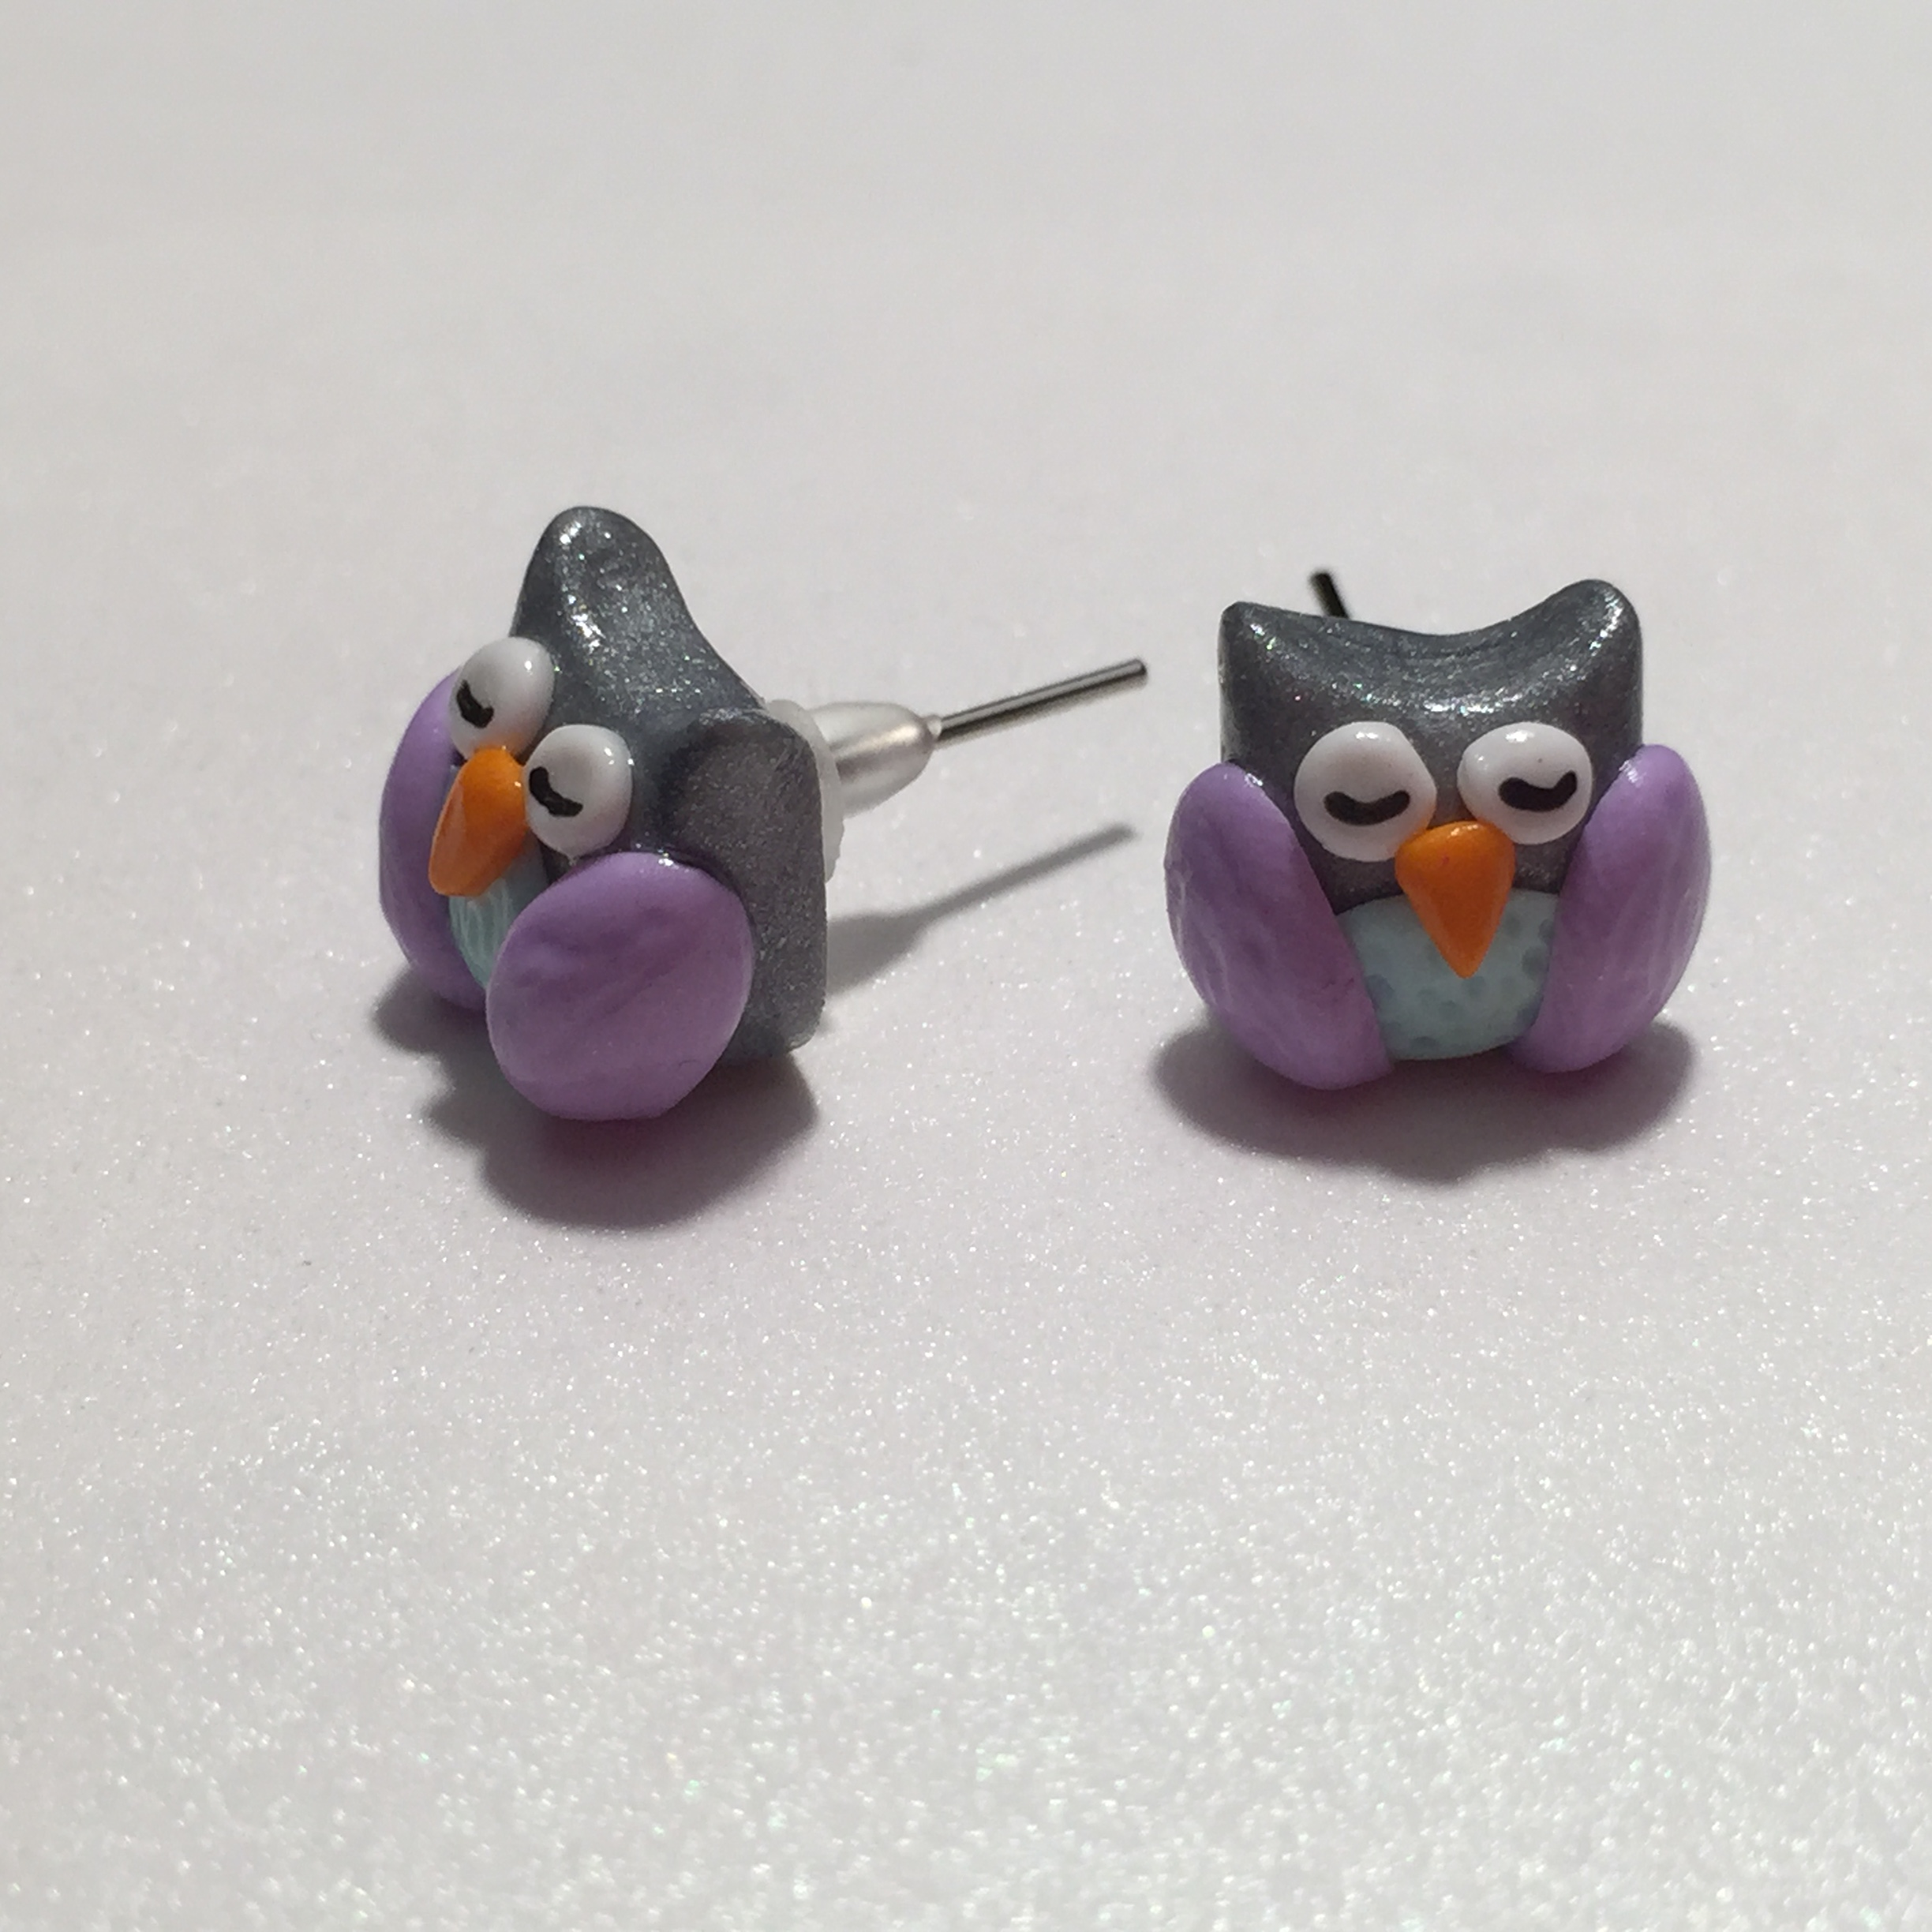 Cute Sleepy Owl earrings Polymer Clay Jewelry, Fimo clay, rilakkumashop.nl